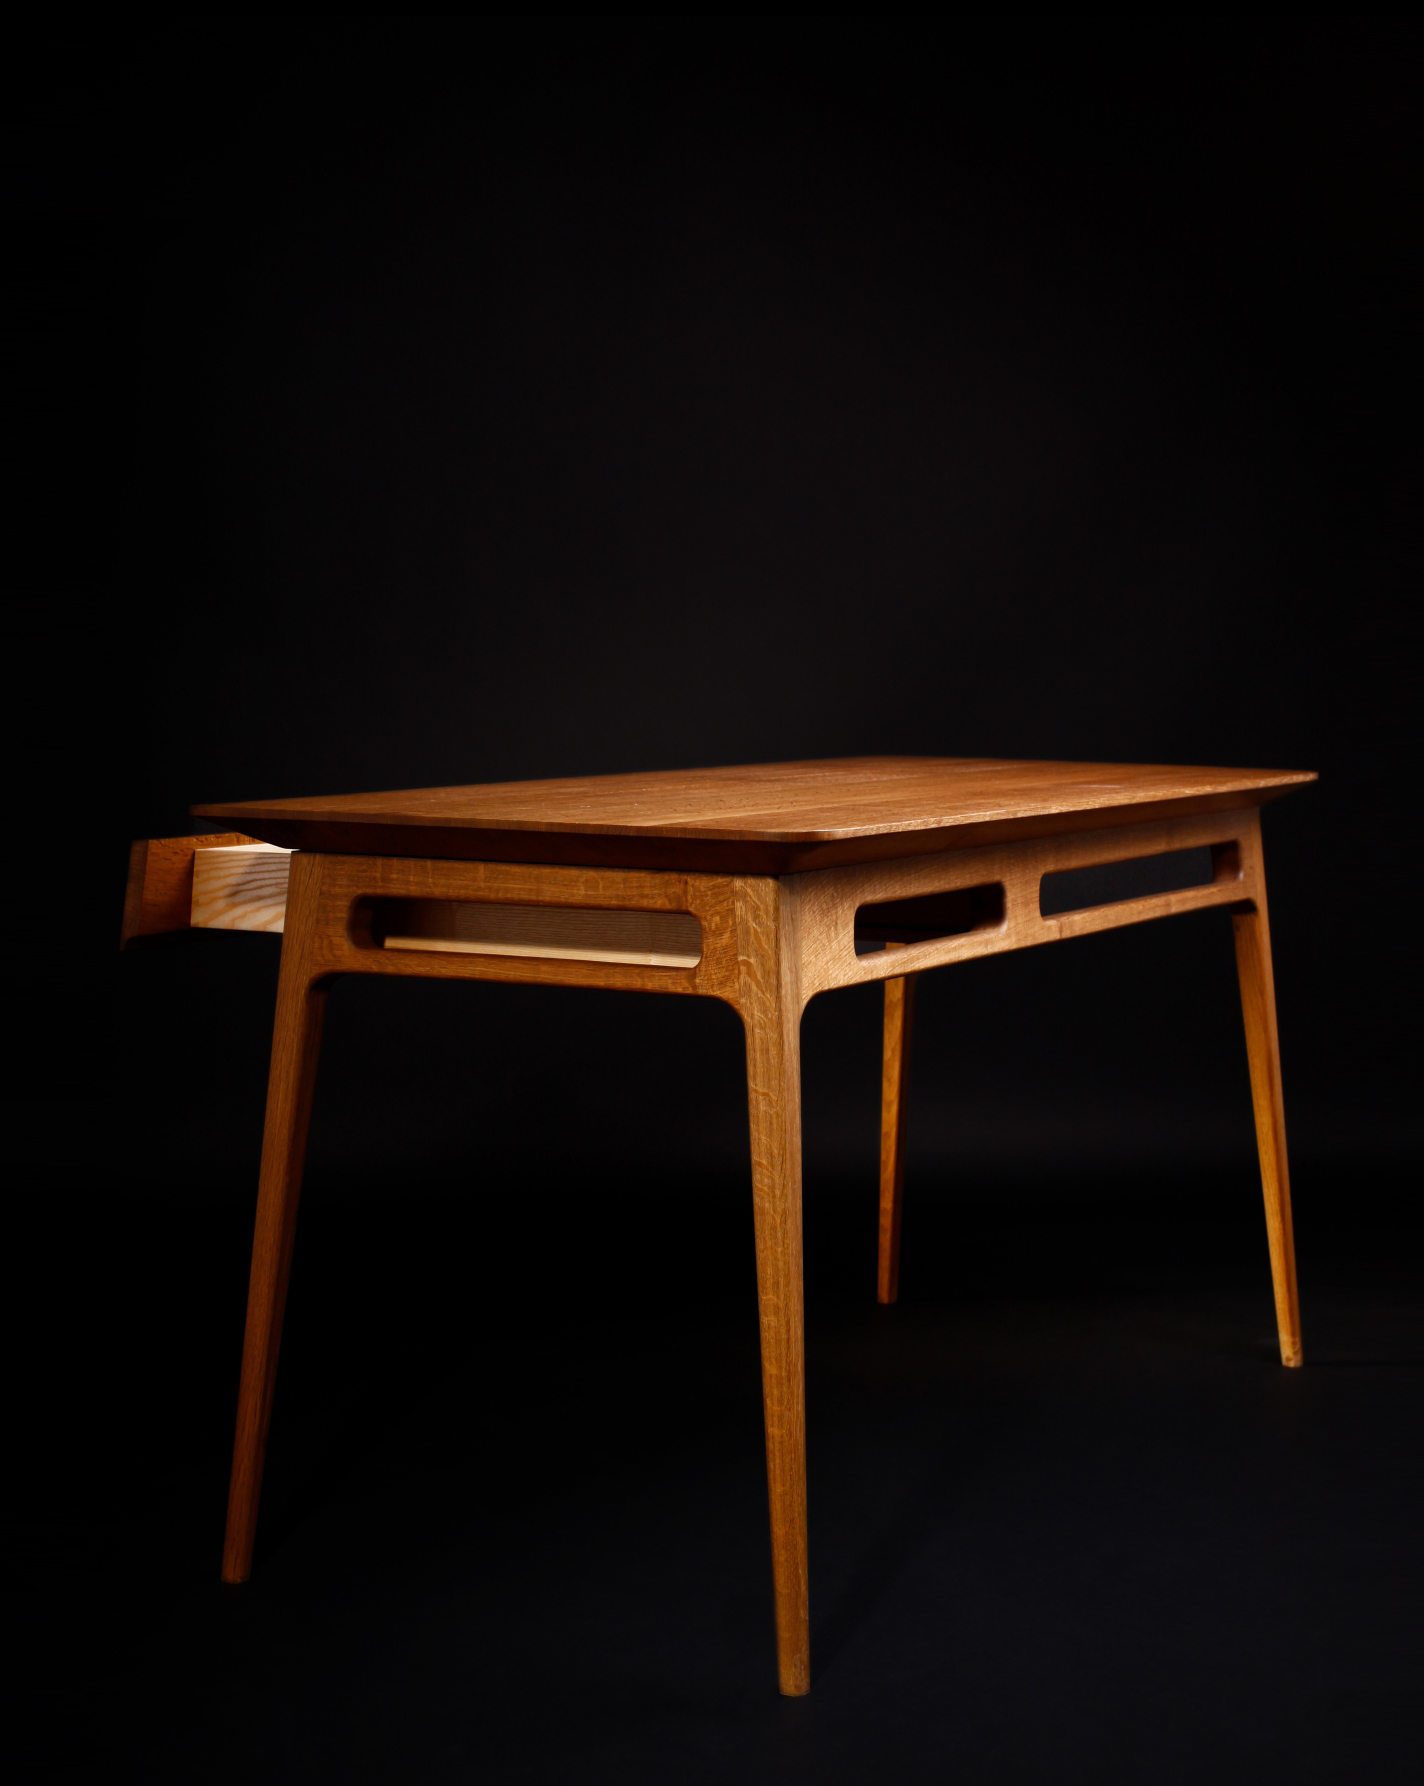 Fumed oak desk by Alice Blogg